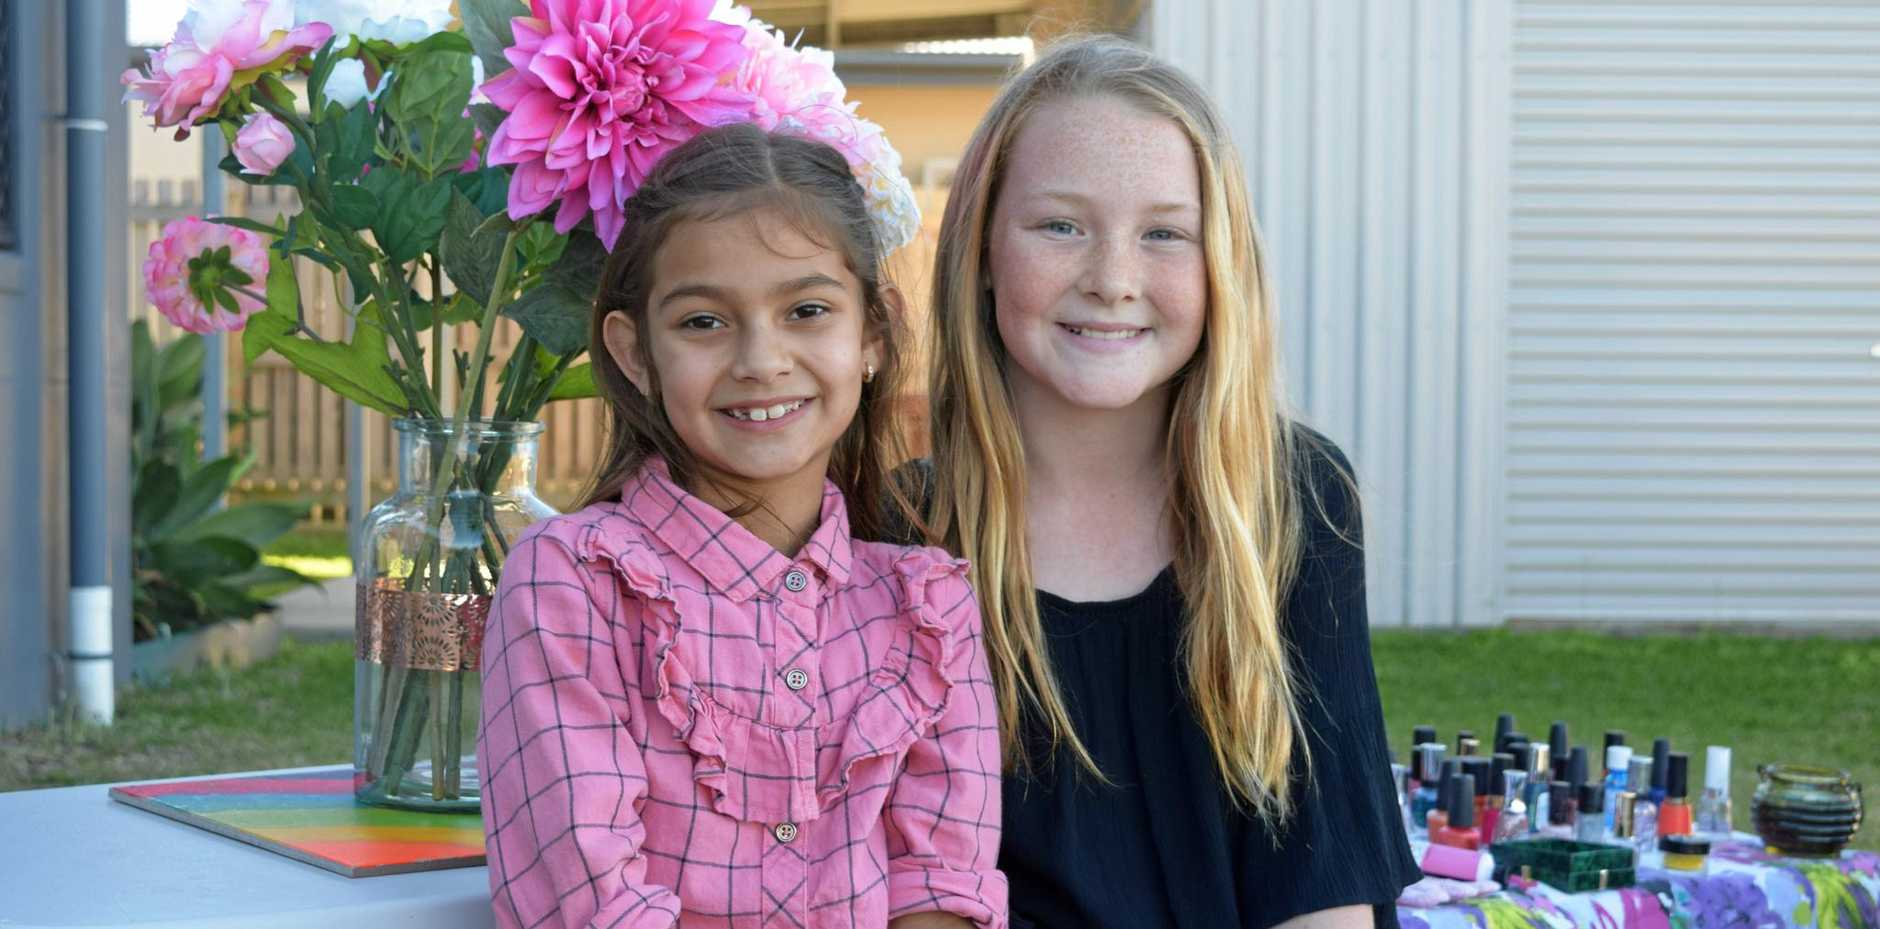 Rose Aujla, 7,with Breeanna Taylor, 11, at their backyard pamper business on Wednesday.